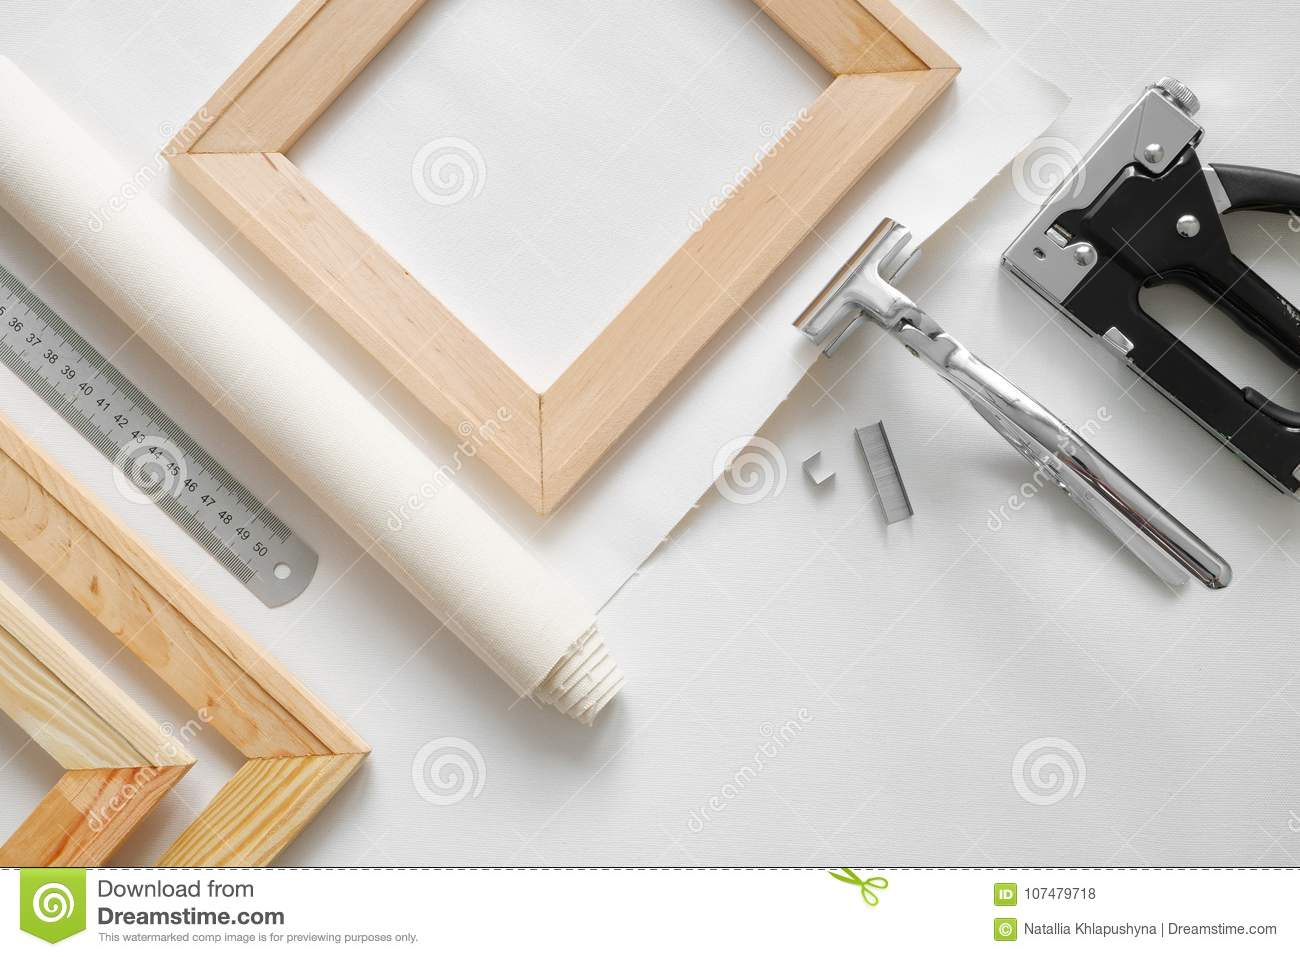 Artist canvas in roll, wooden stretcher bars, canvas stretcher pilers and staple gun.